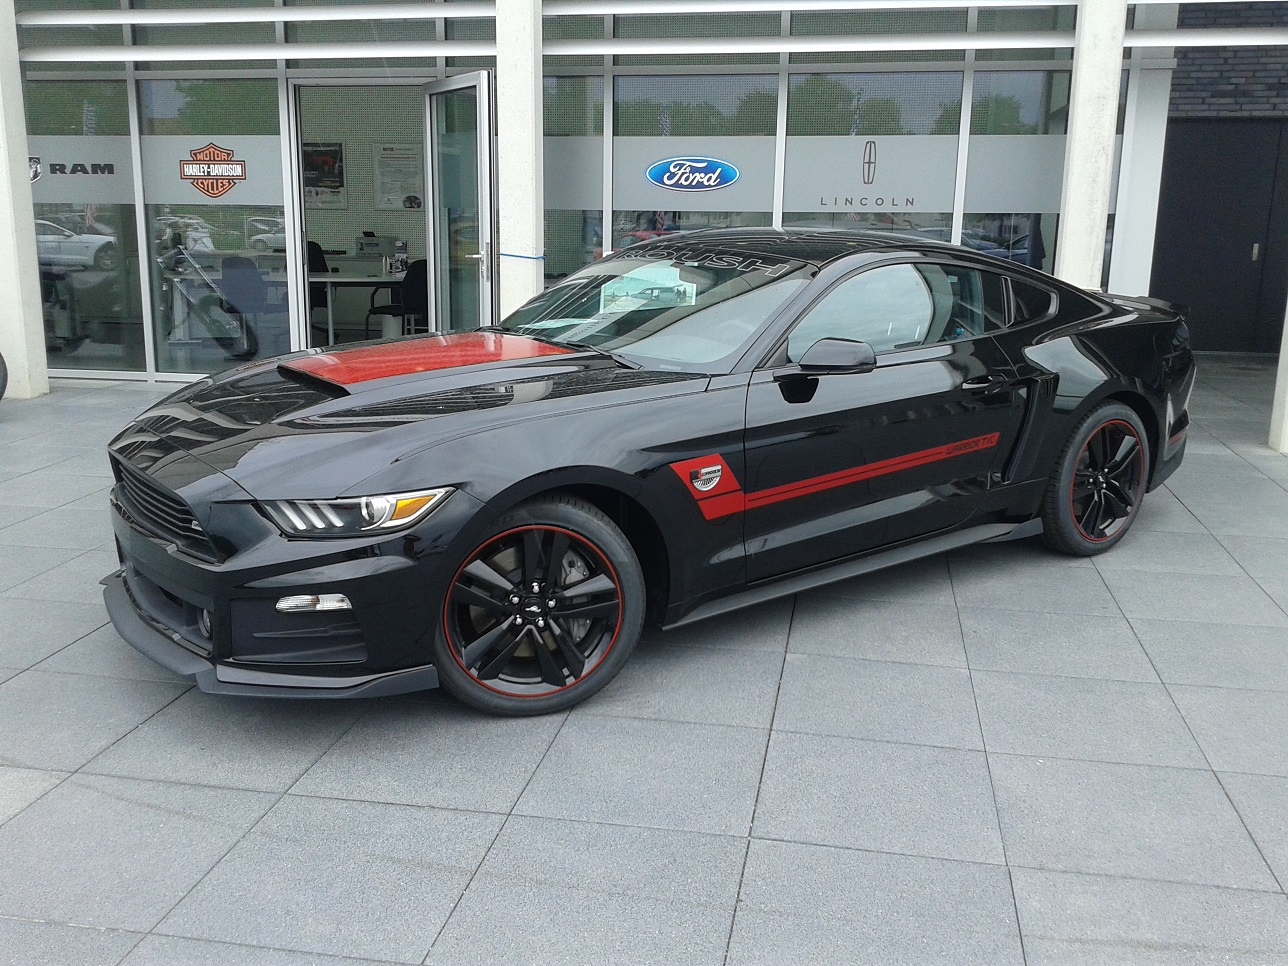 roush warrior mustang in